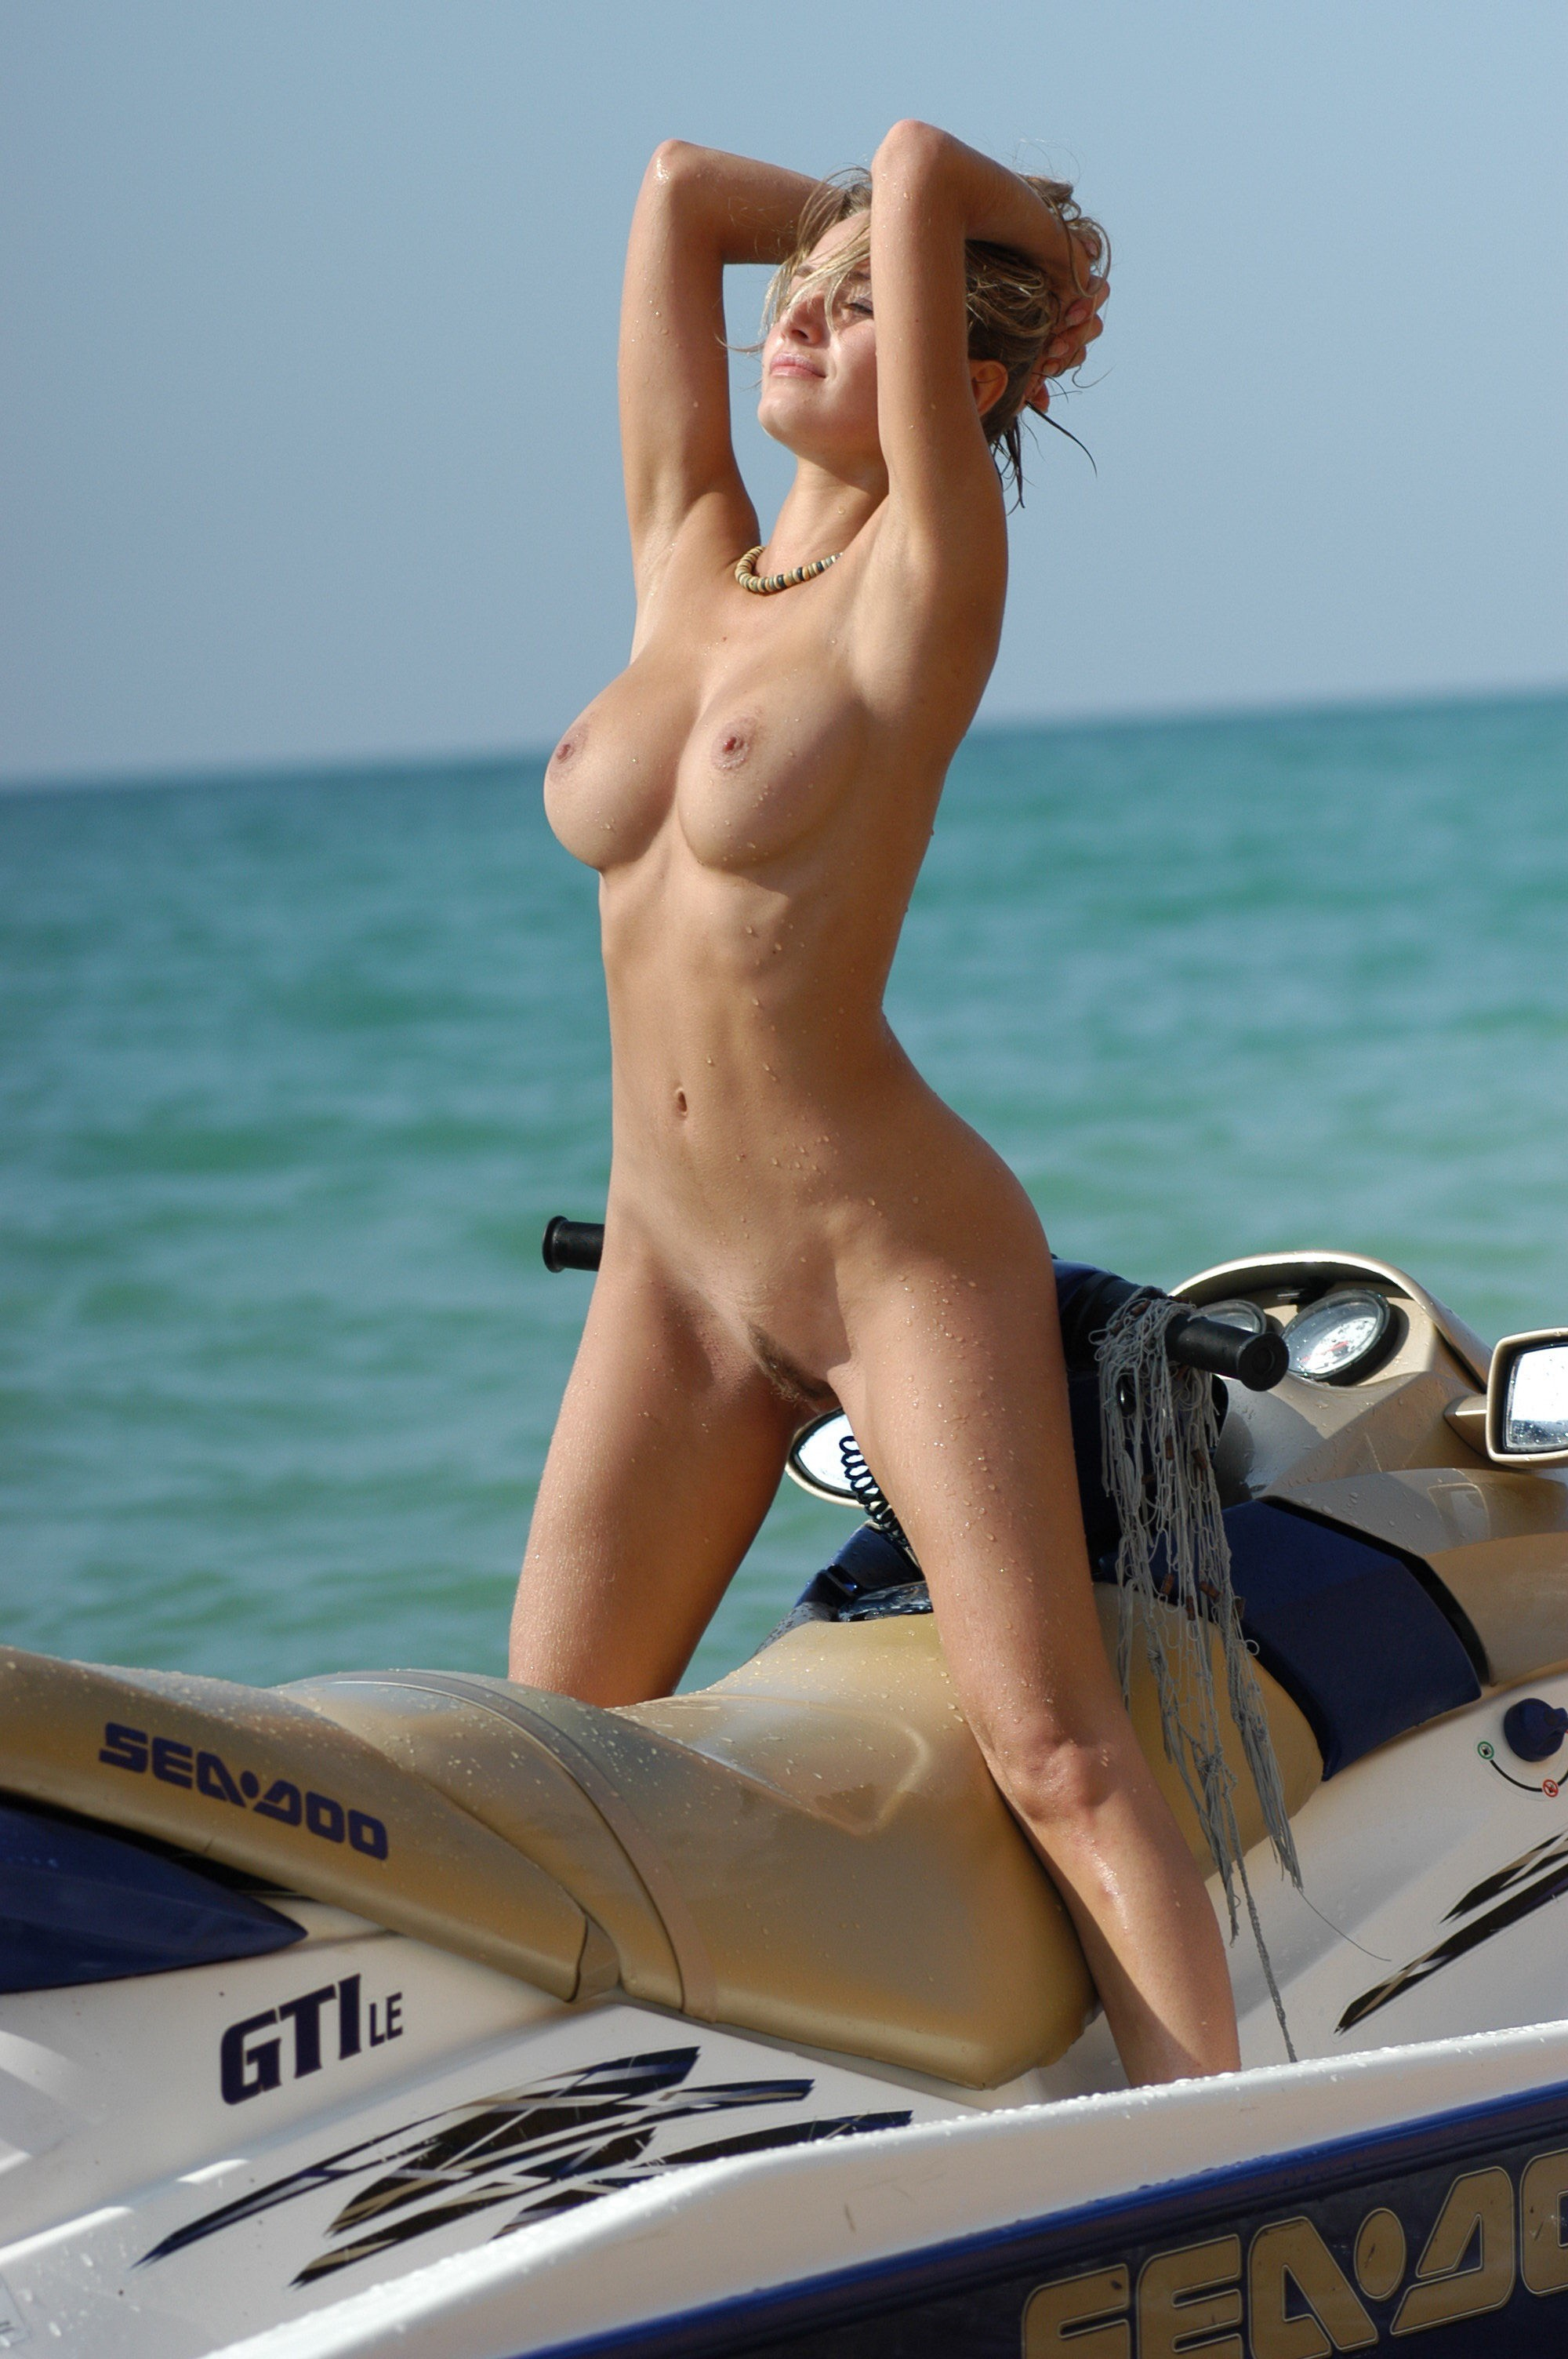 Sexy naked women on jet ski